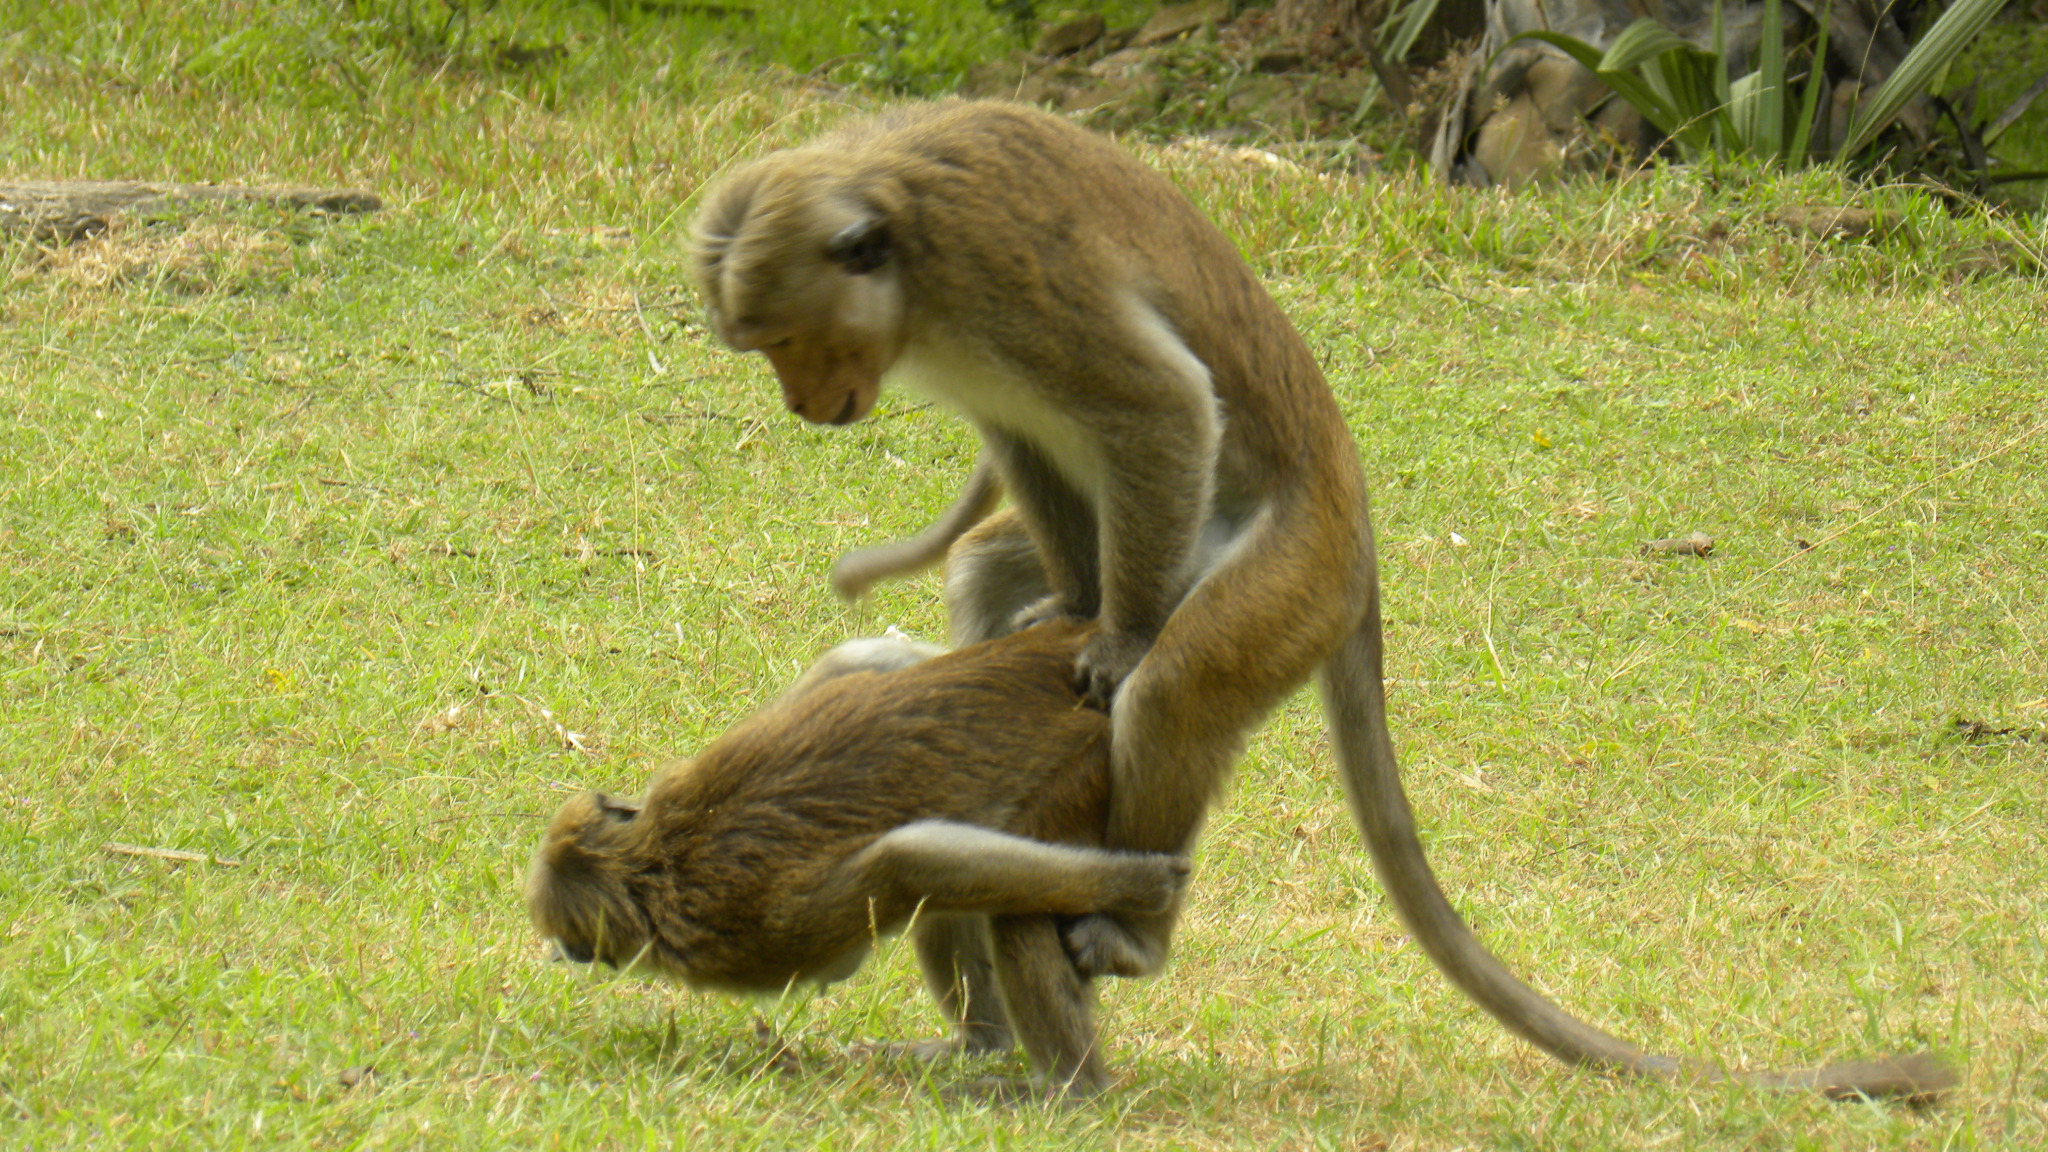 Ed Yong on Twitter: I looked at these monkeys and they